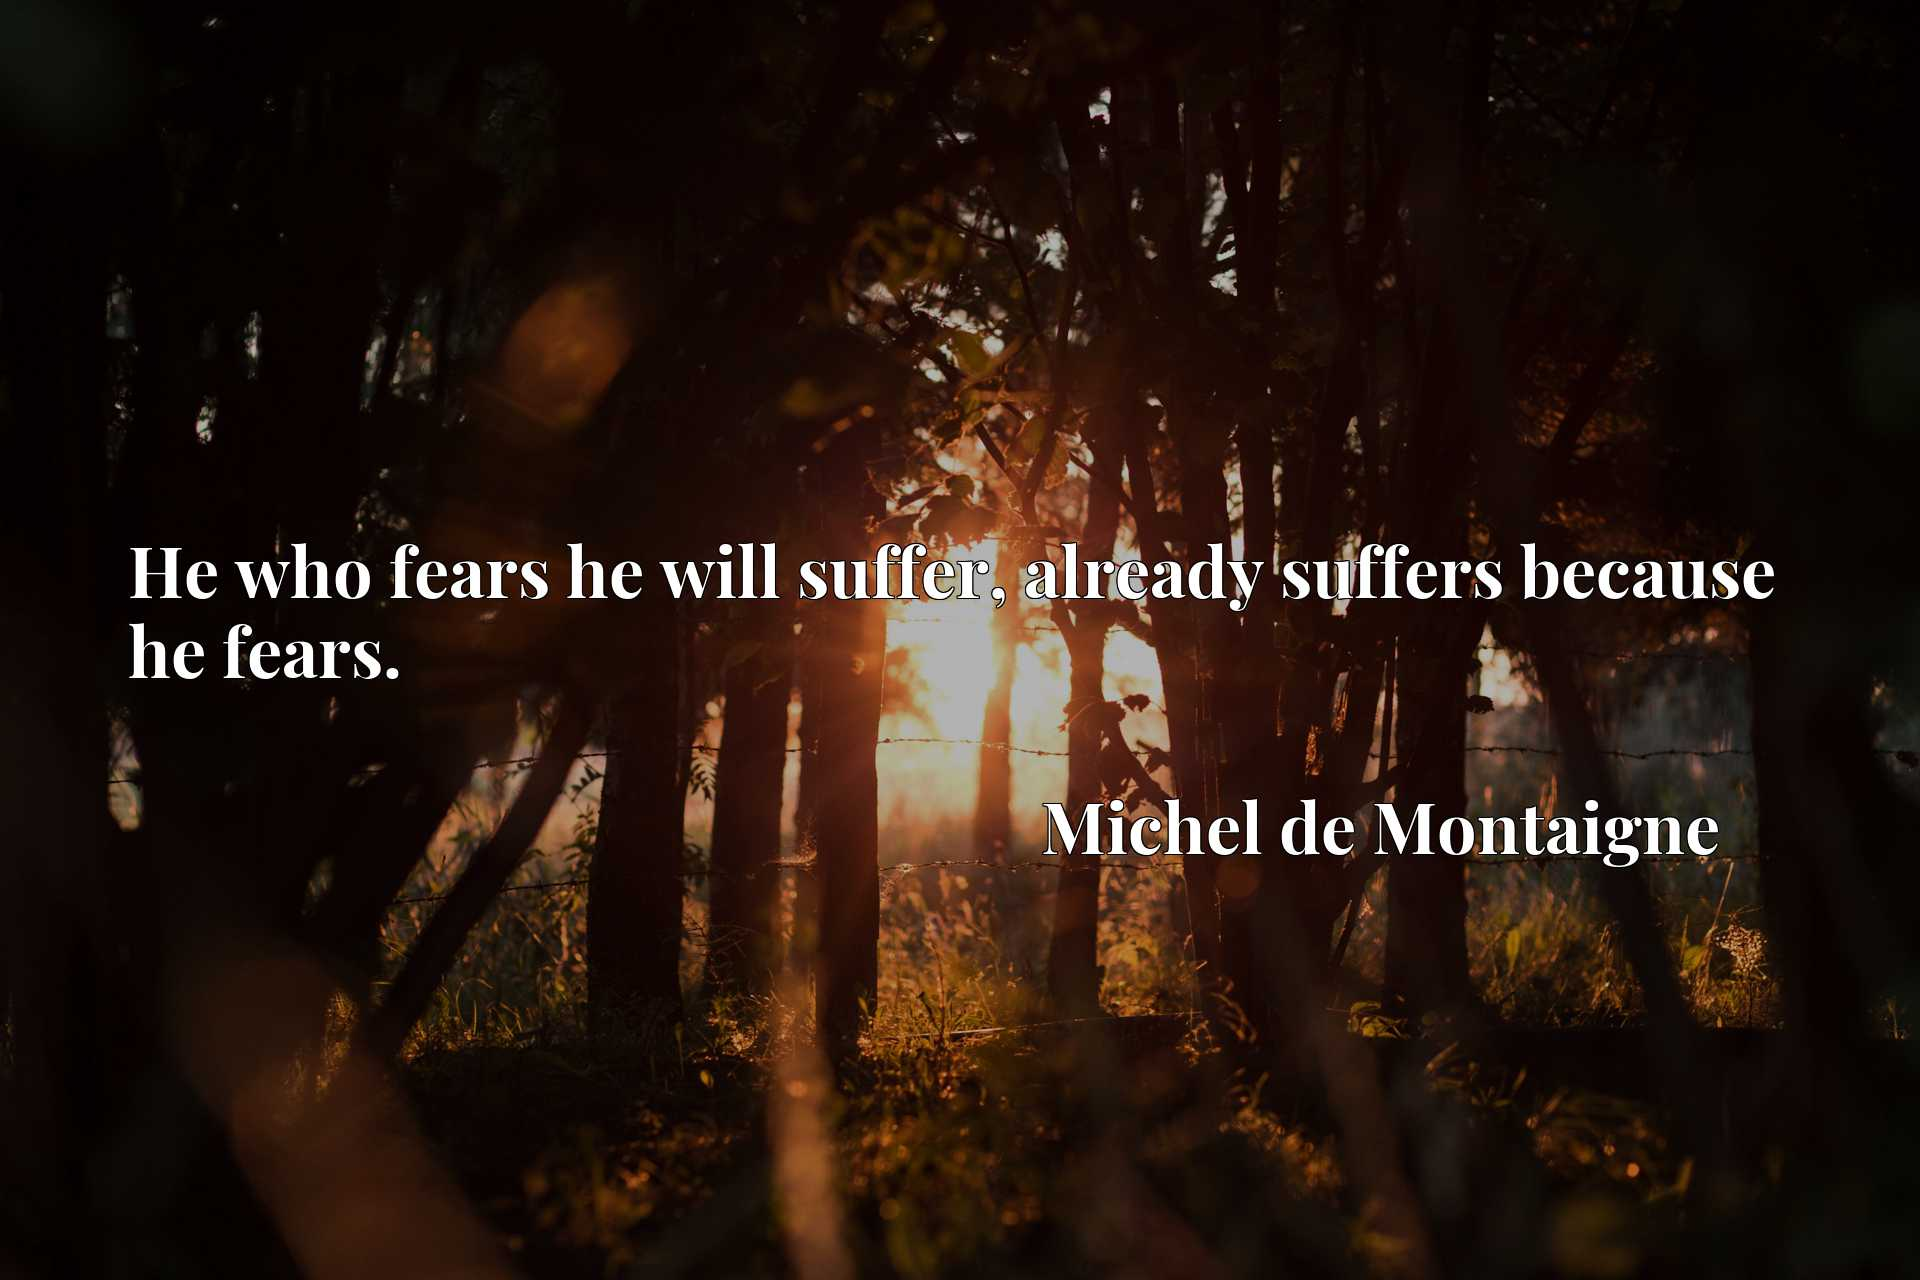 He who fears he will suffer, already suffers because he fears.